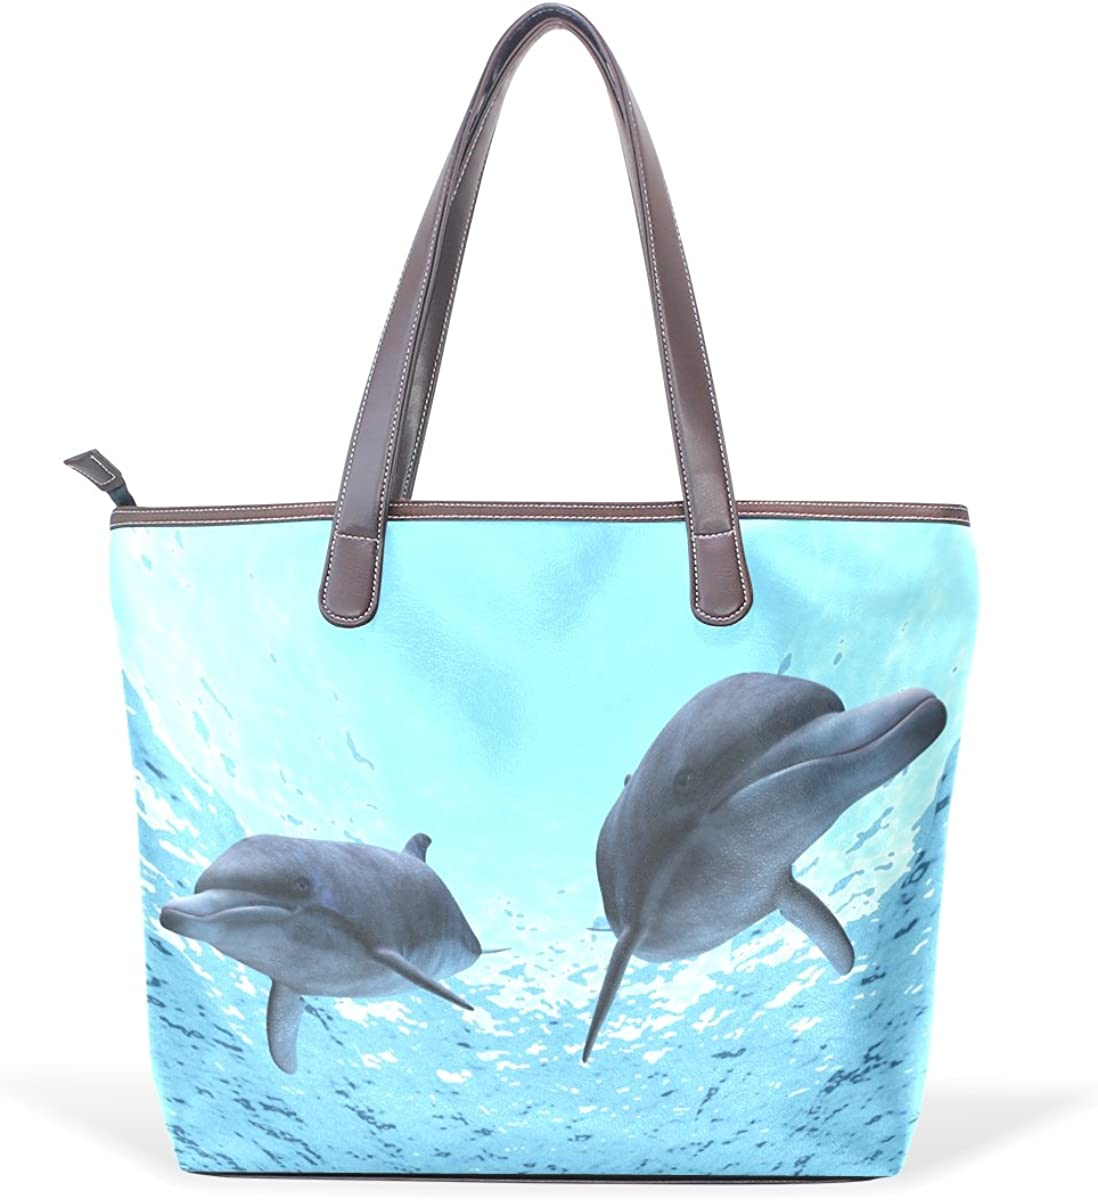 Sunlome Underwater Cute Dolphins Handbags For Women Girls PU Leather Shoulder Tote Bag